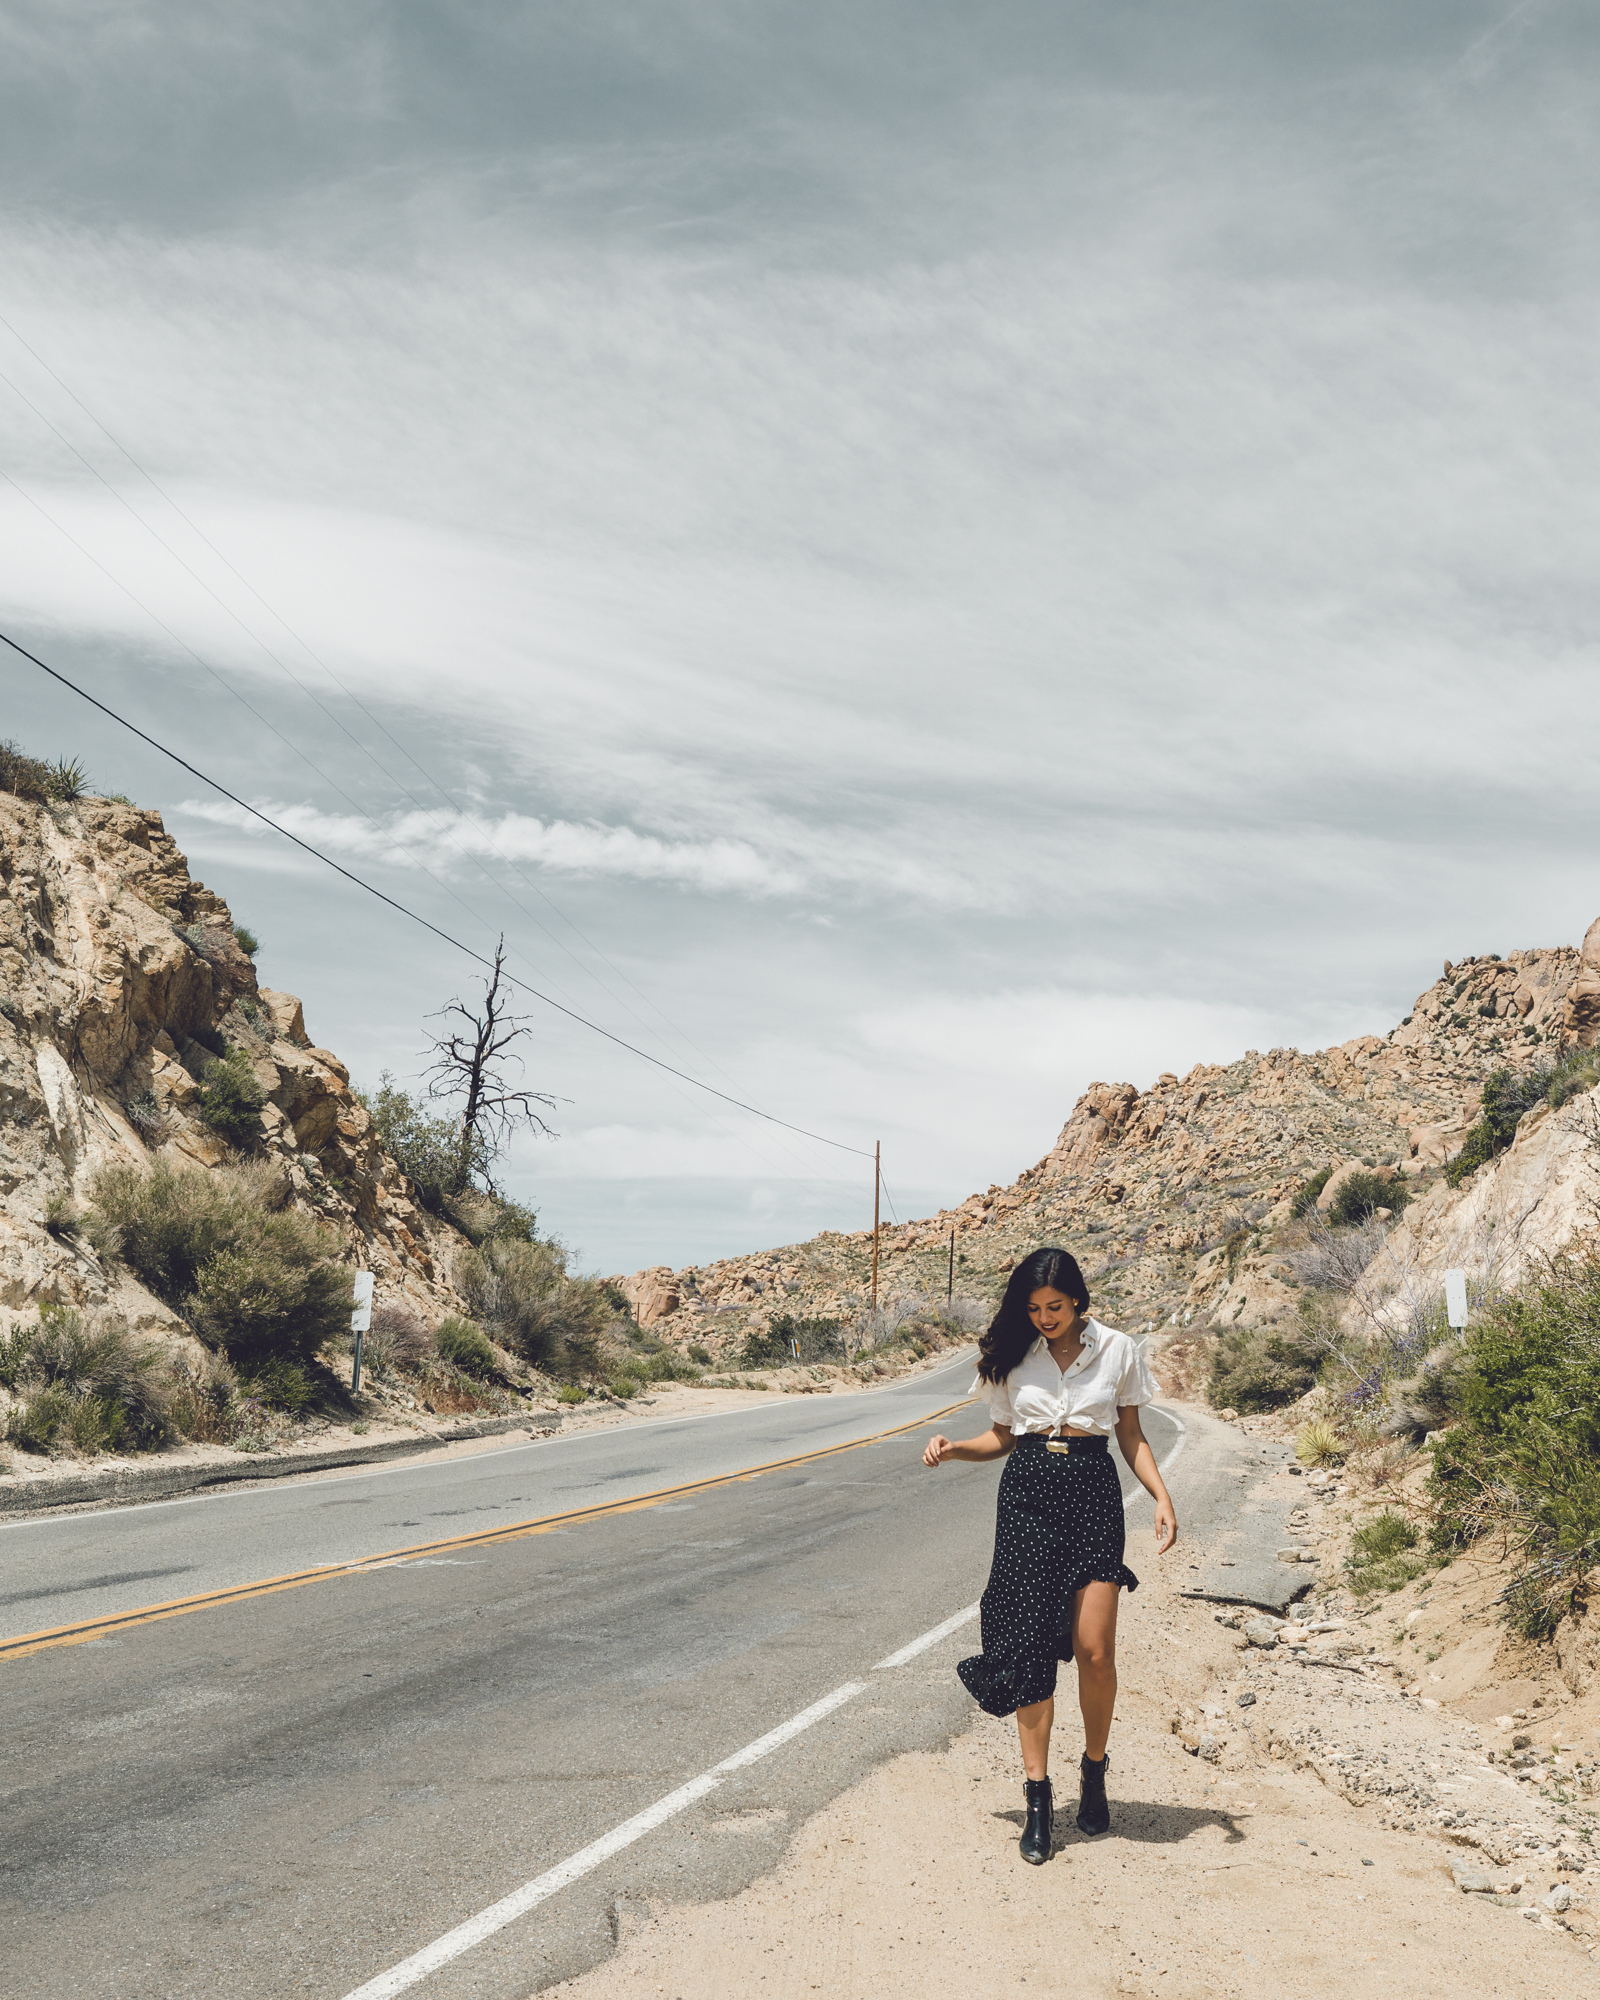 Rachel Off Duty: How to Spend 1 Day in the Central California Desert - Pioneertown